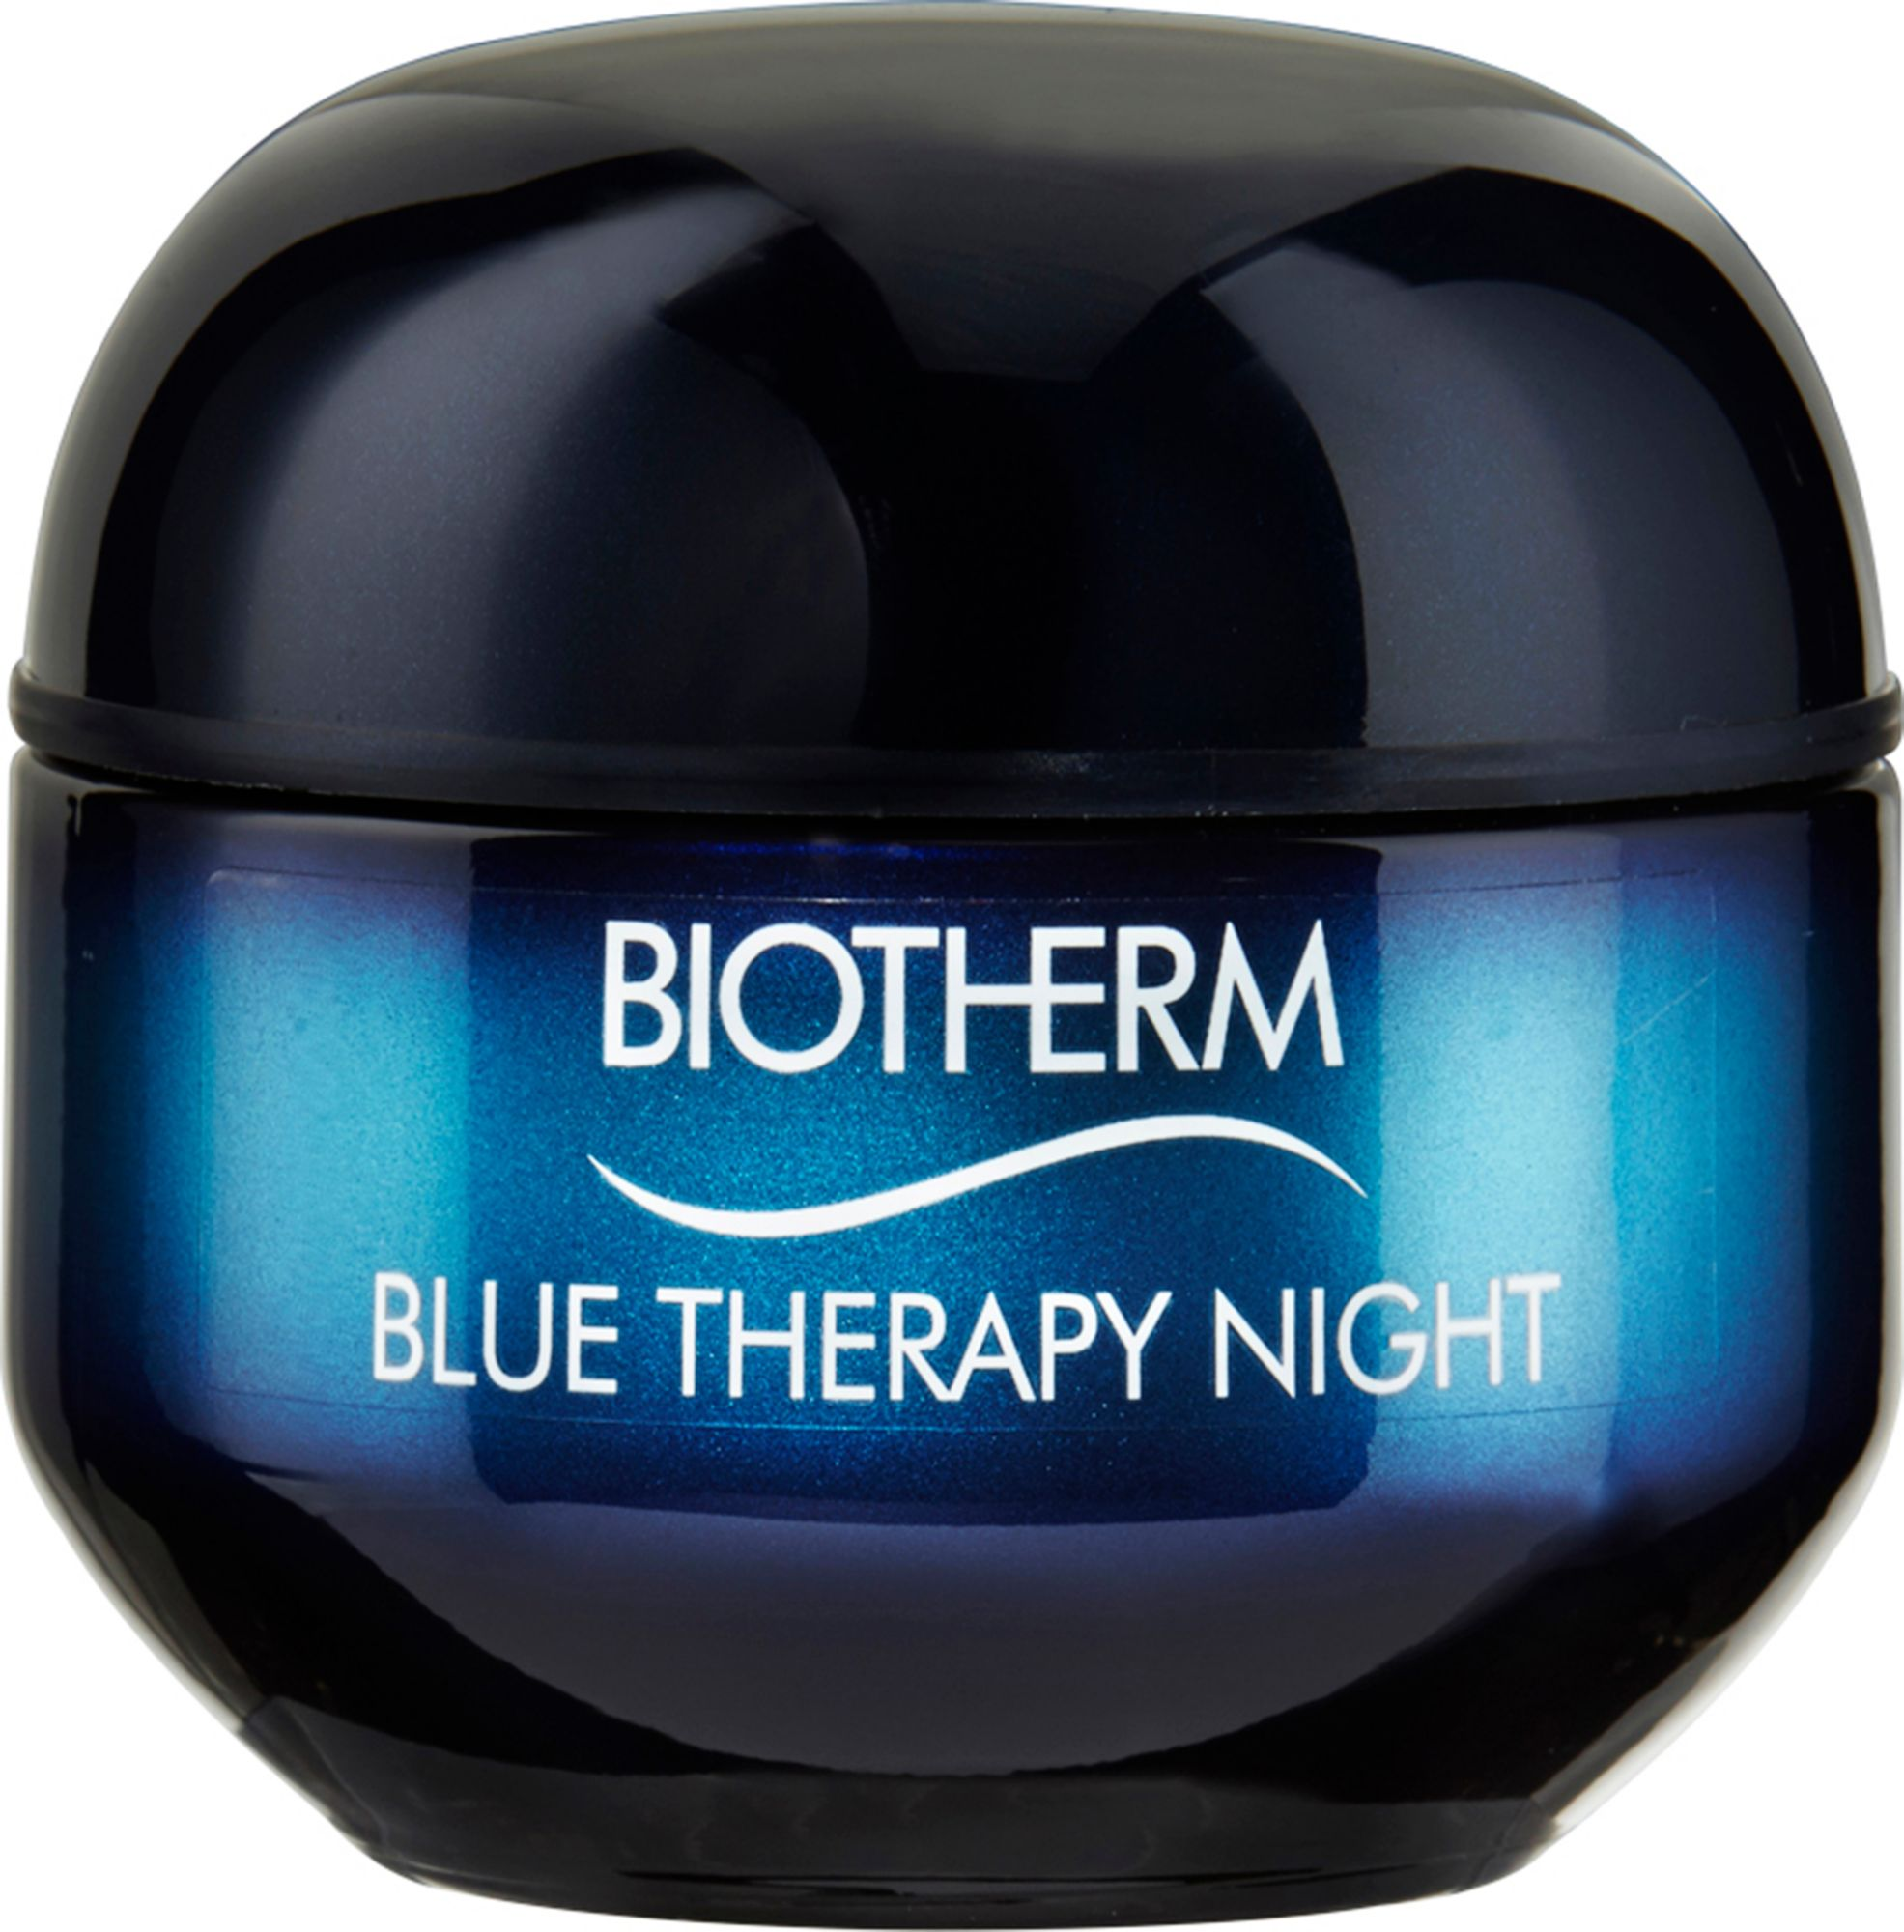 BIOTHERM Biotherm, »Blue Therapy Night Cream«, Anti-Aging Nachtpflege